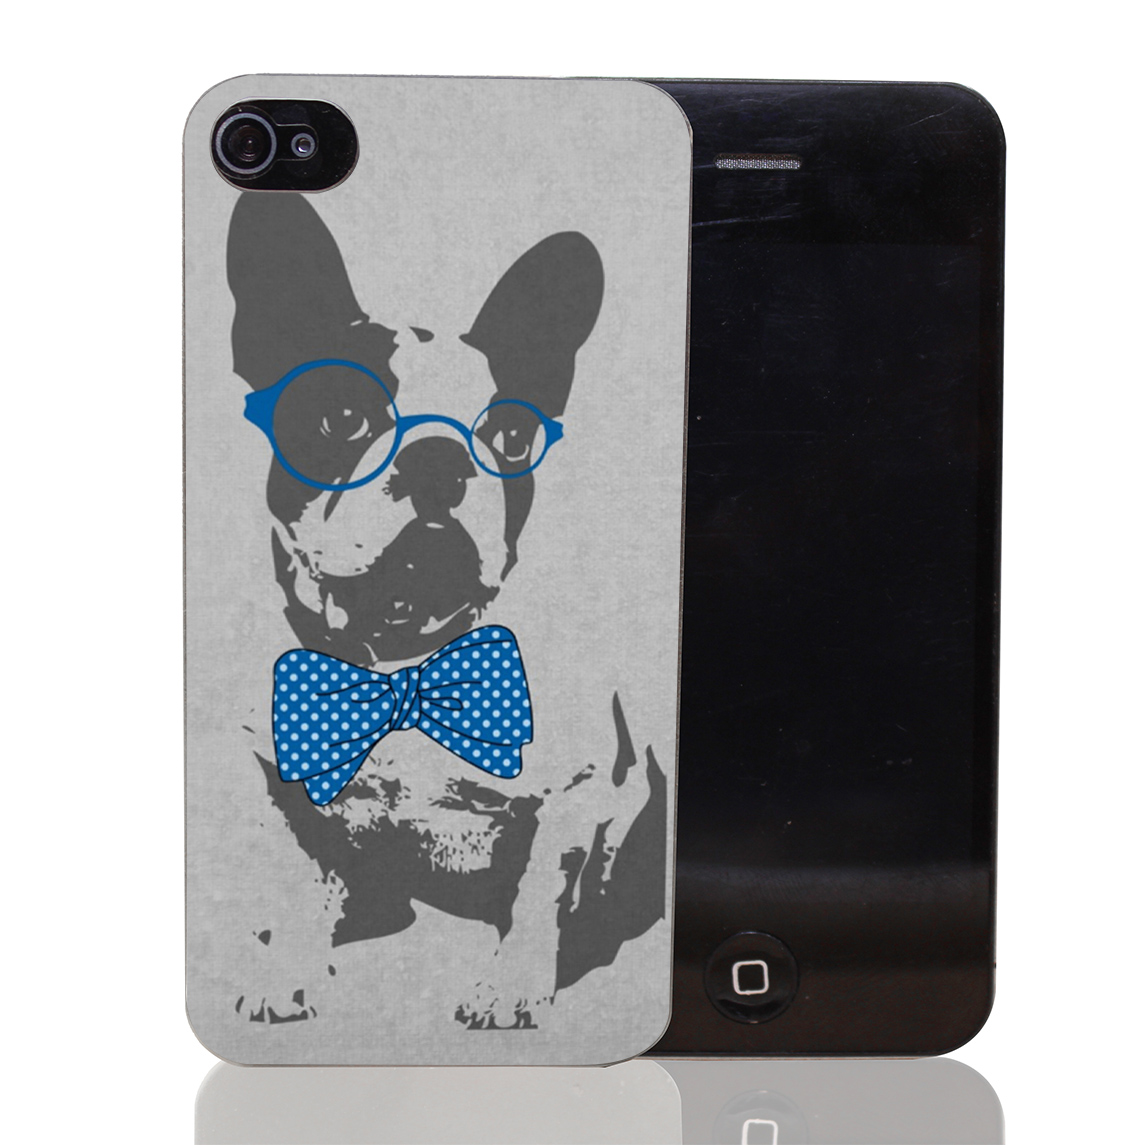 1523T Cute Funny Trendy Vintage Animal French Bulldog Hard Transparent Clear Case for iPhone 4 4s 5 5s SE 5c 6 6s & Plus(China (Mainland))